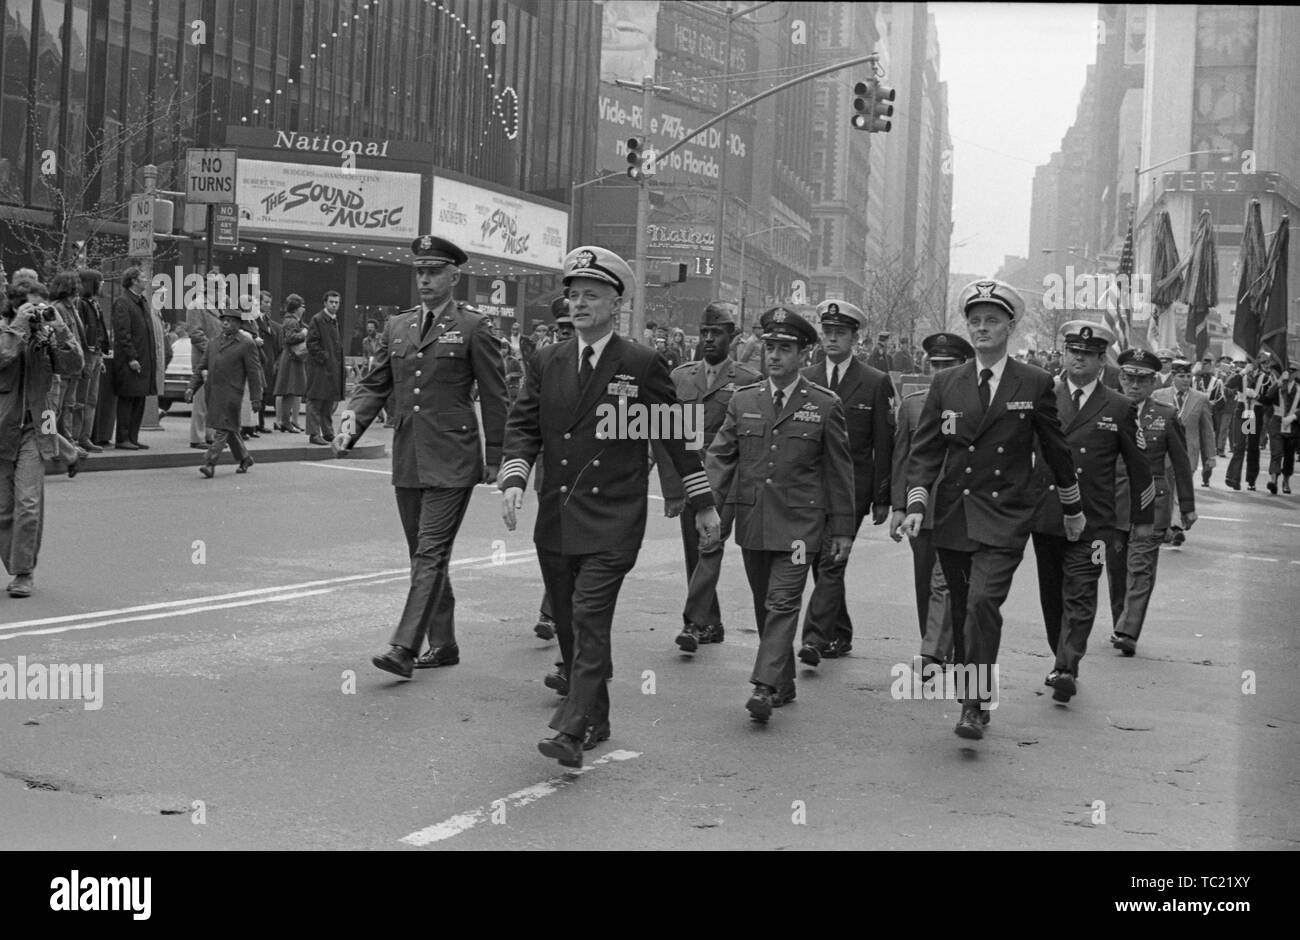 High ranking officers, wearing uniforms, march in the street